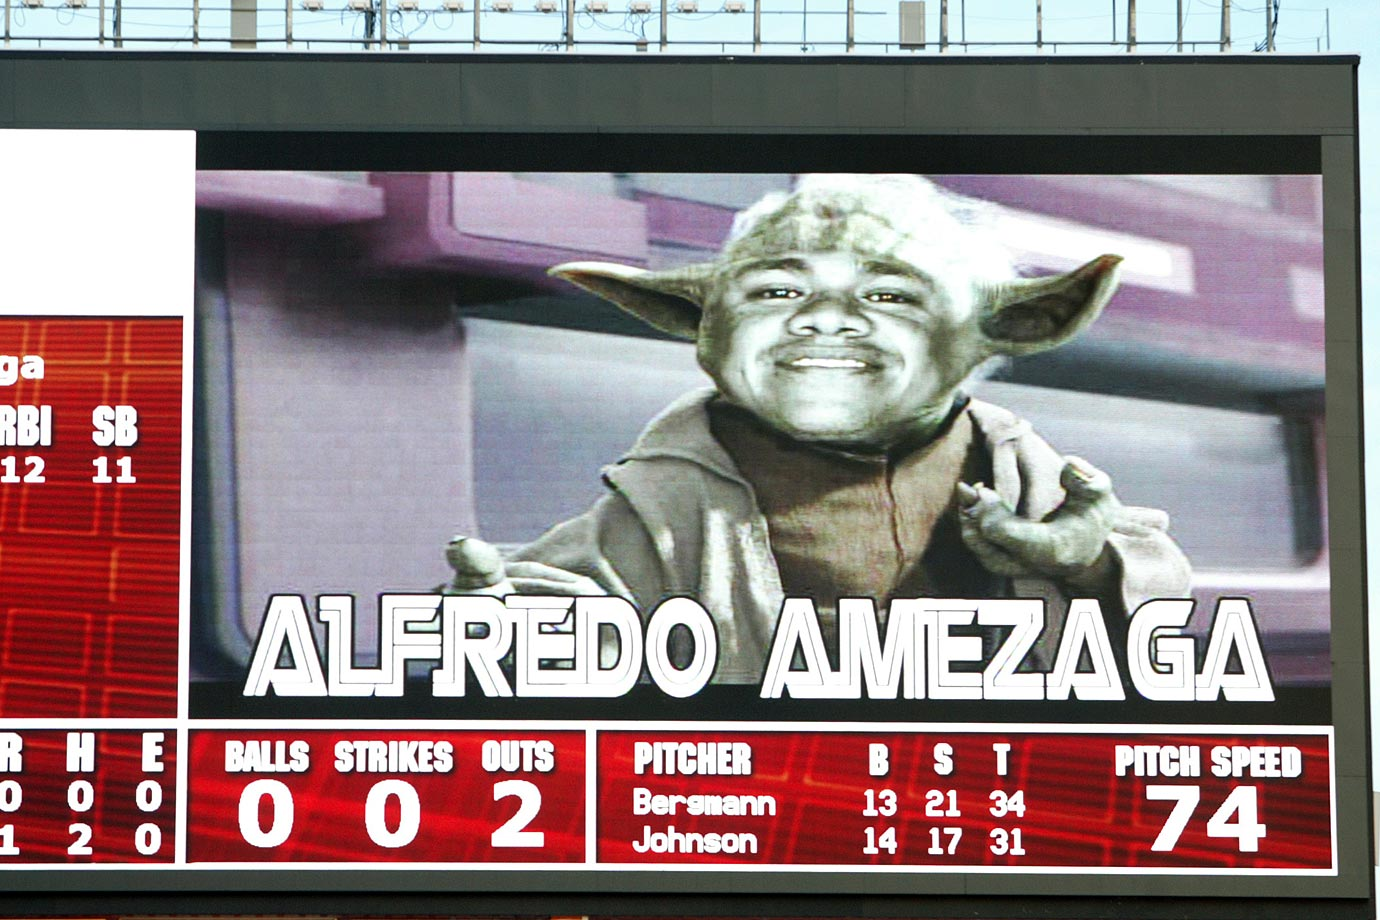 Florida Marlins utility player Alfredo Amezaga is shown on the scoreboard as Yoda during his at-bat in the first inning against the Washington Nationals on Aug. 22, 2006 at Sun Life Stadium in Miami.